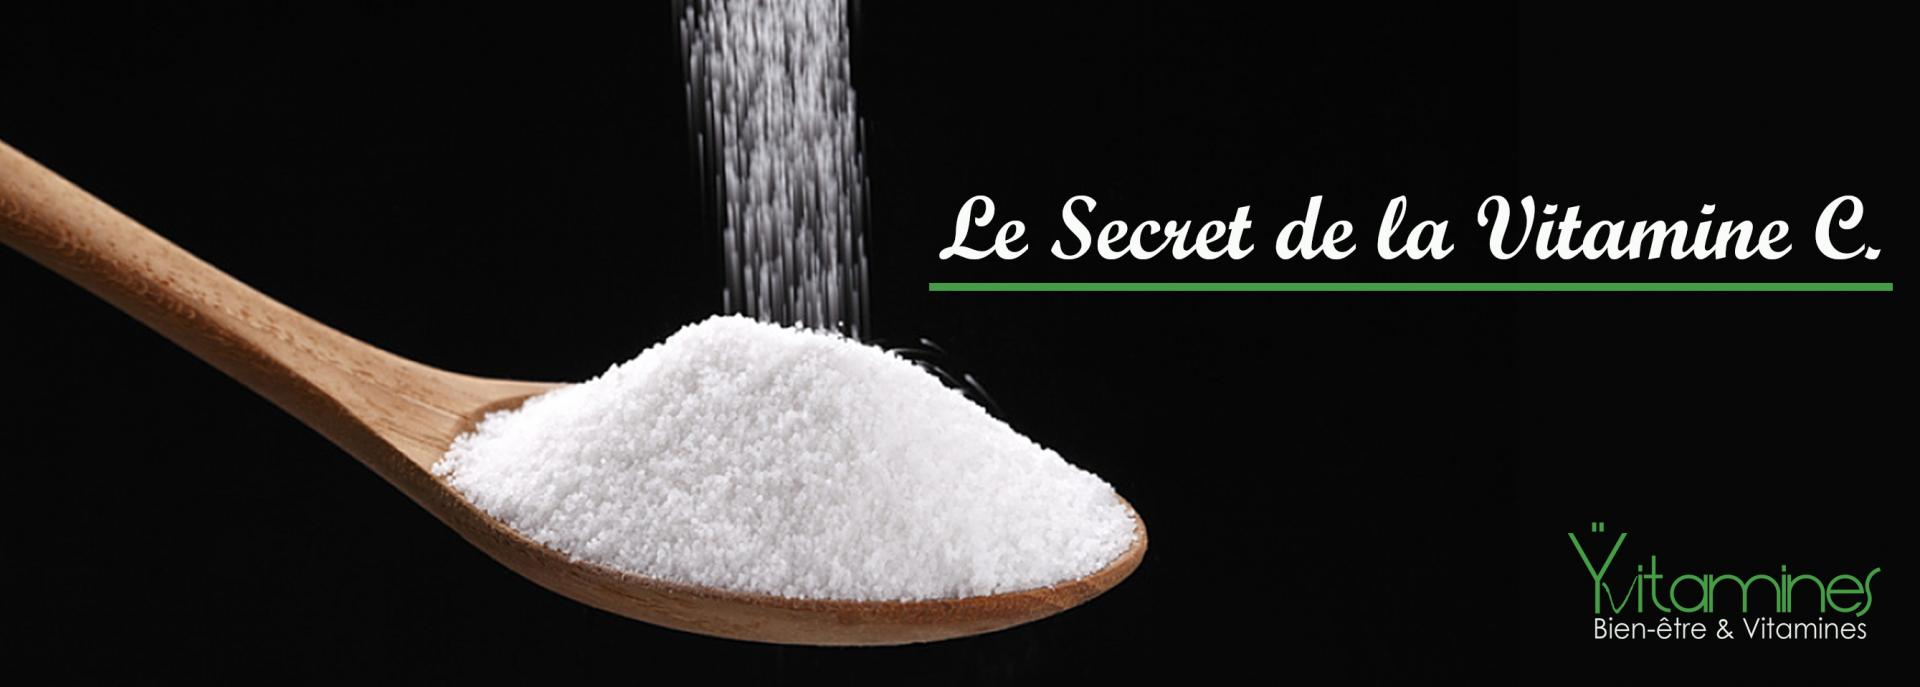 Le secret de la vitamine c2